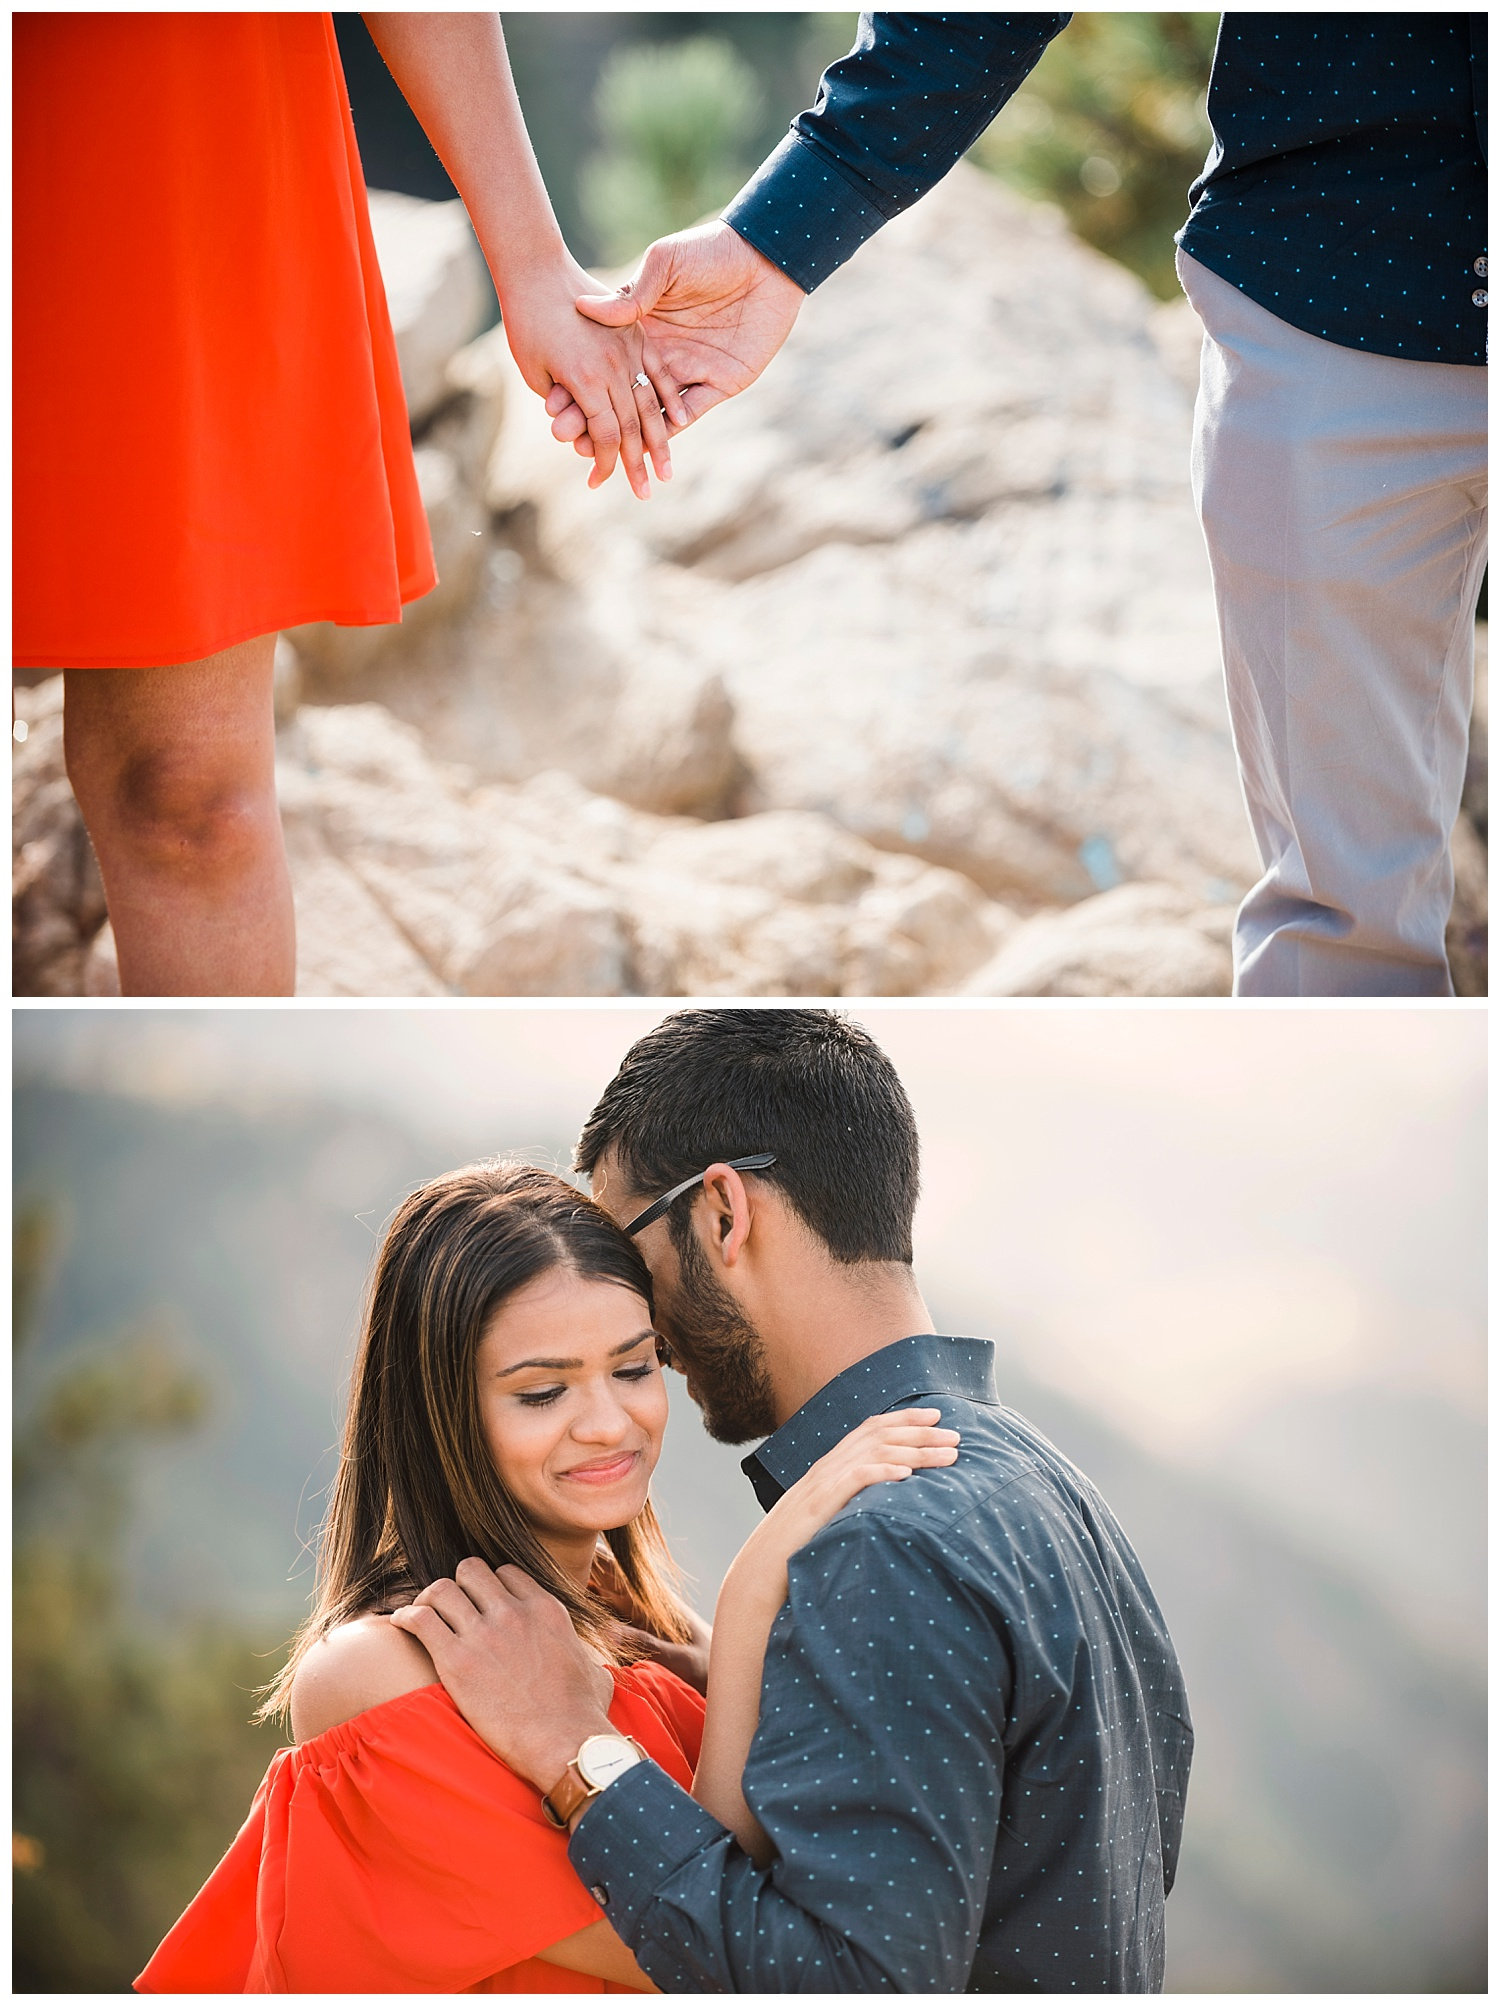 Lookout_Mountain_Surprise_Proposal_Engagement_Apollo_Fields_008.jpg